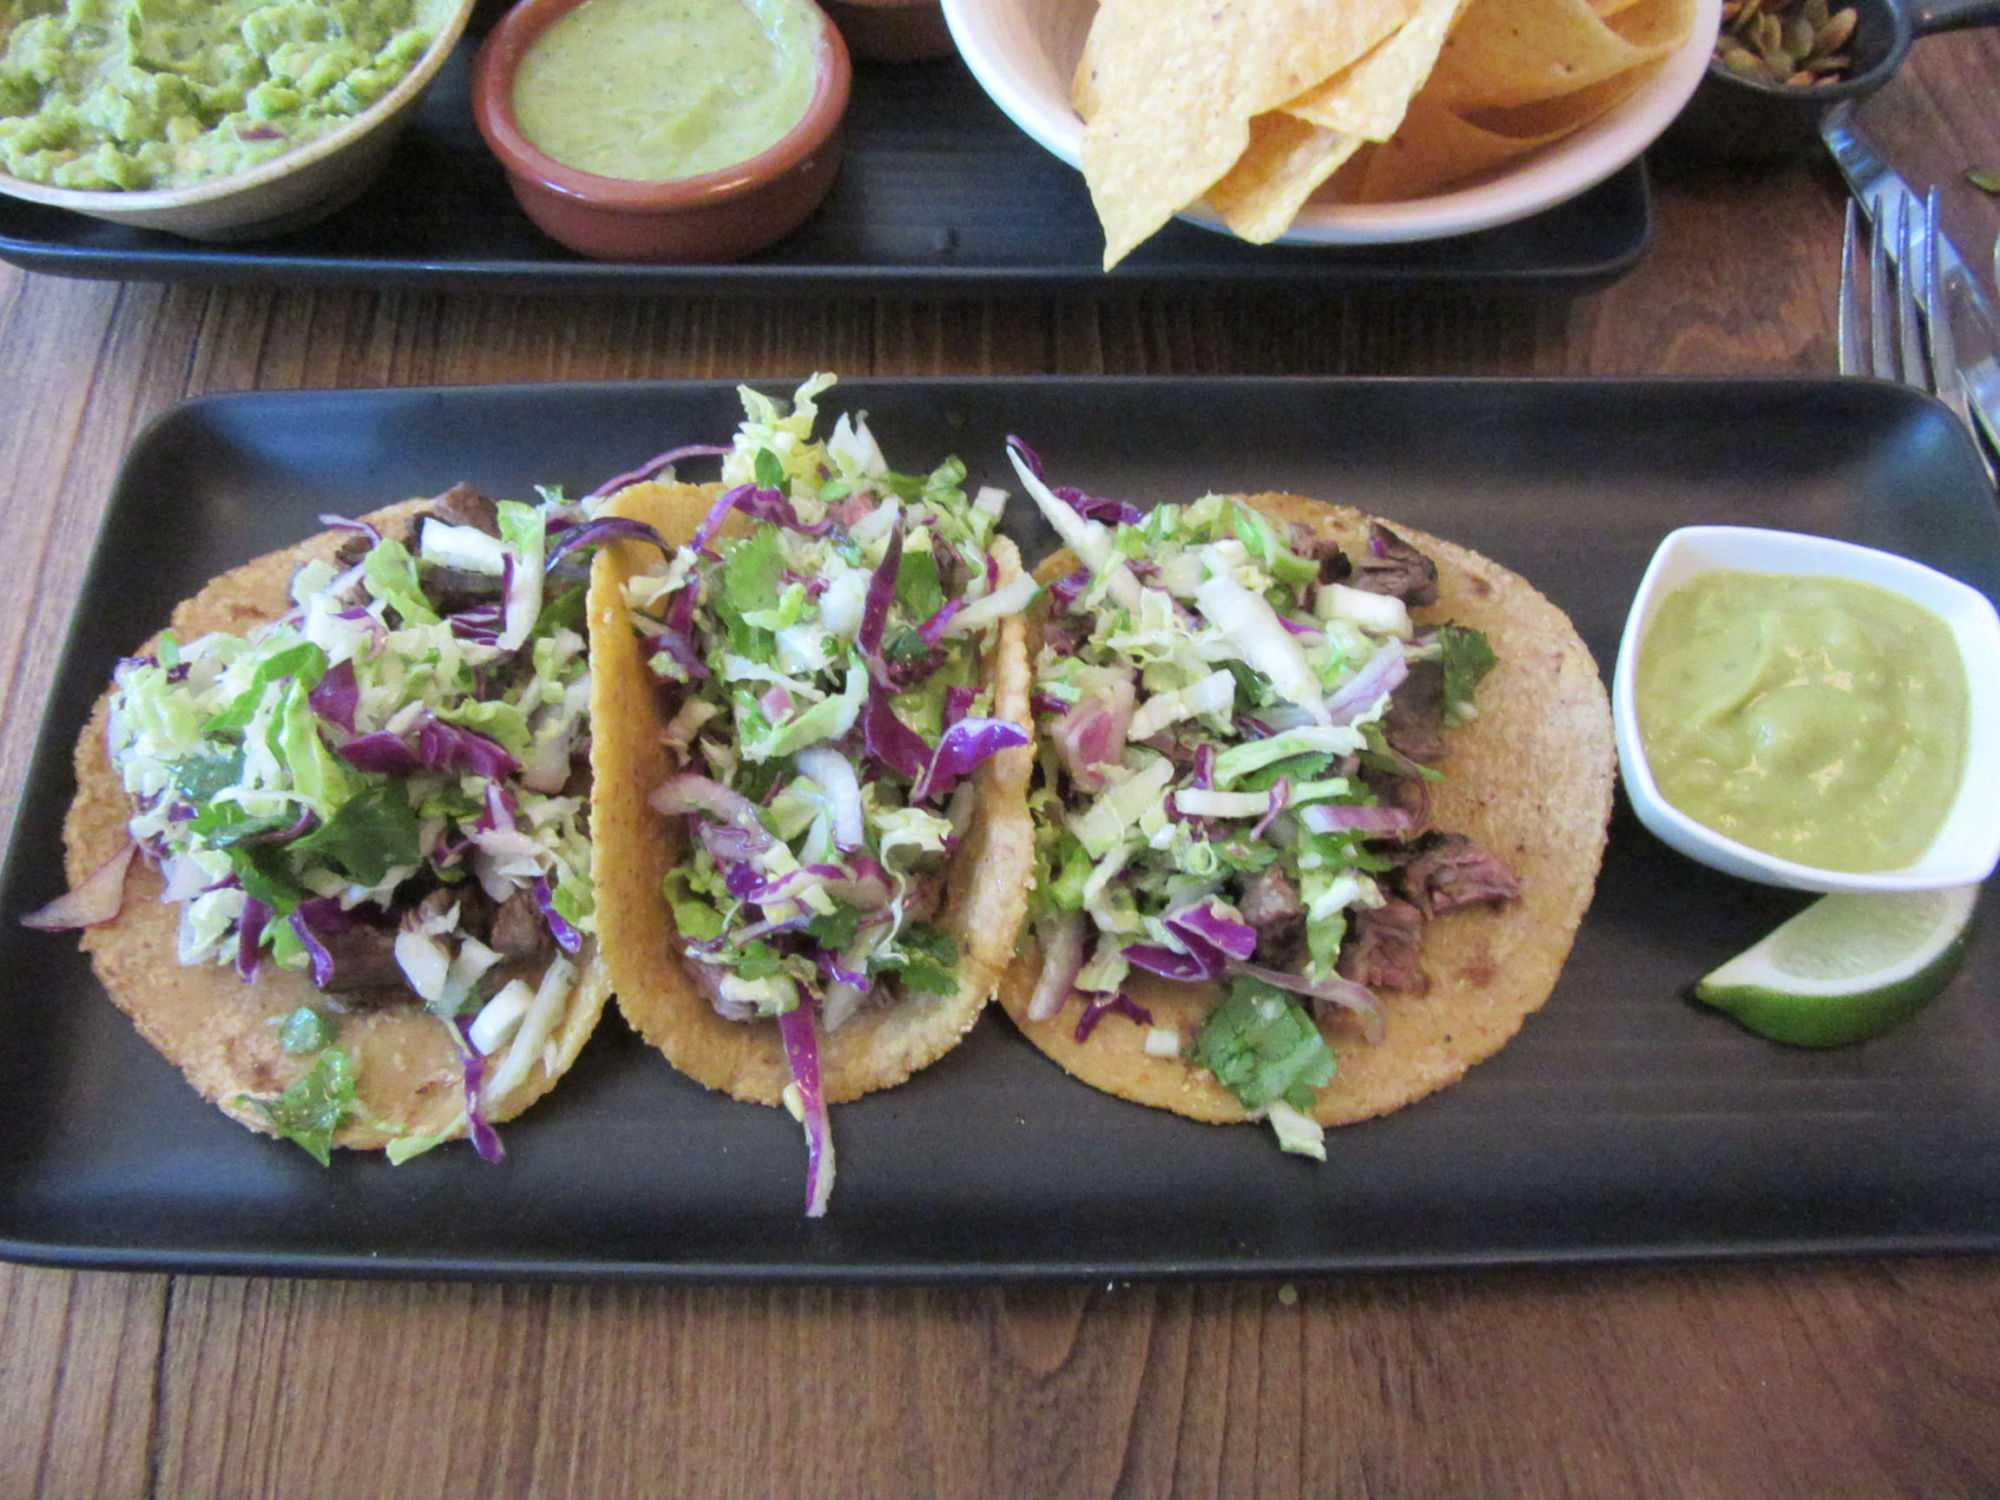 Tamal delivers delicious, pricey Mexican cuisine to Fairfax